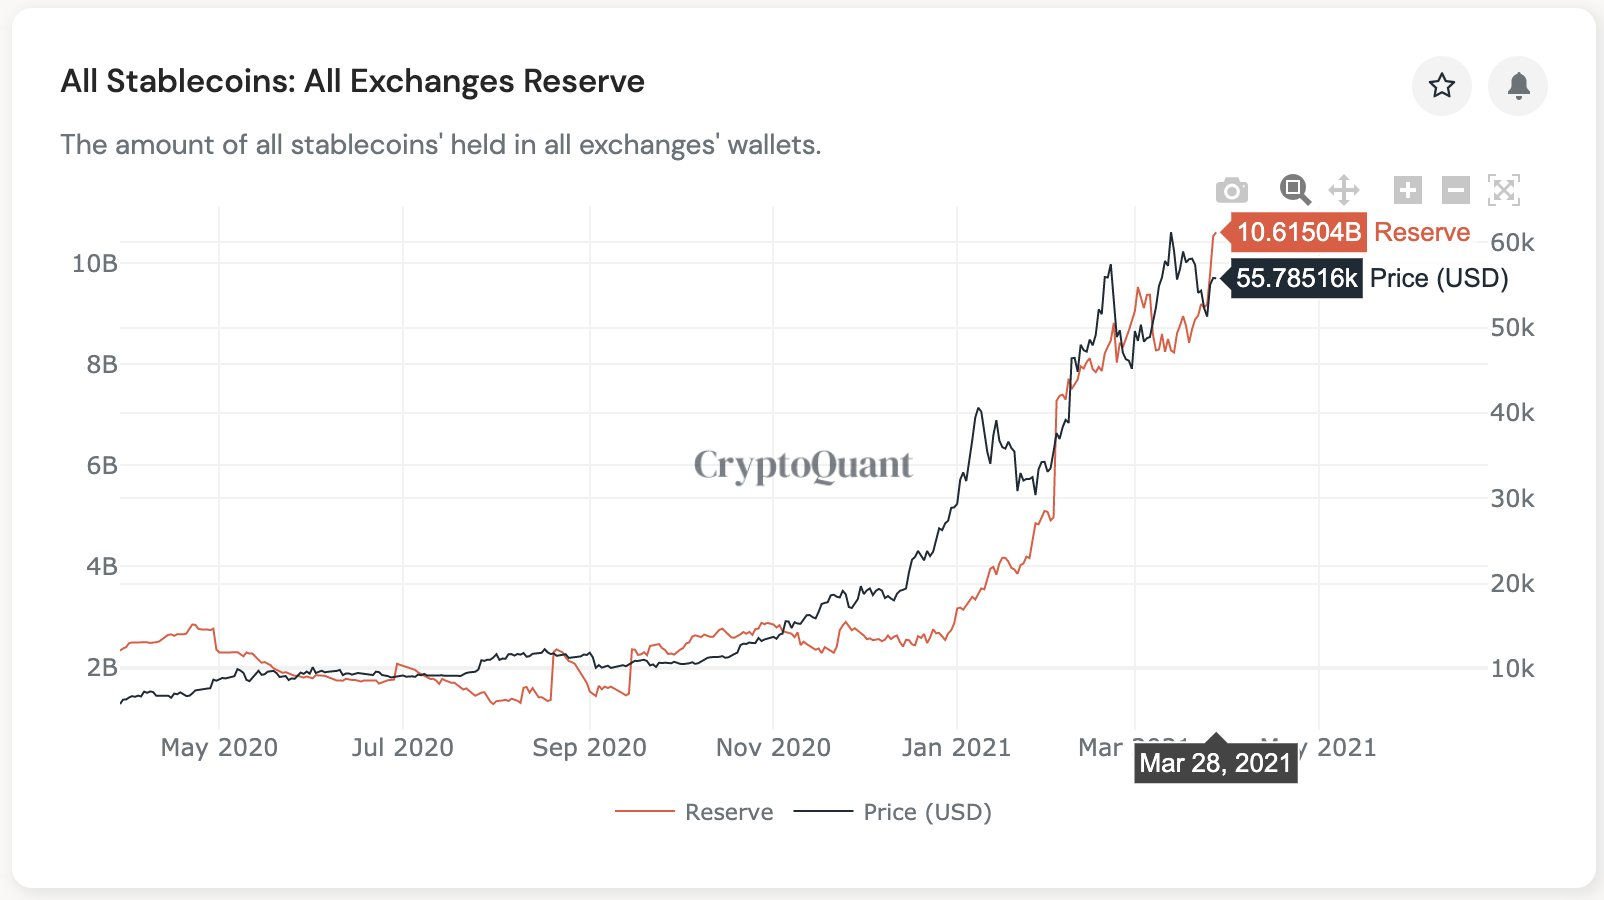 Stablecoin reserves on crypto exchanges hit new historic high of $10B